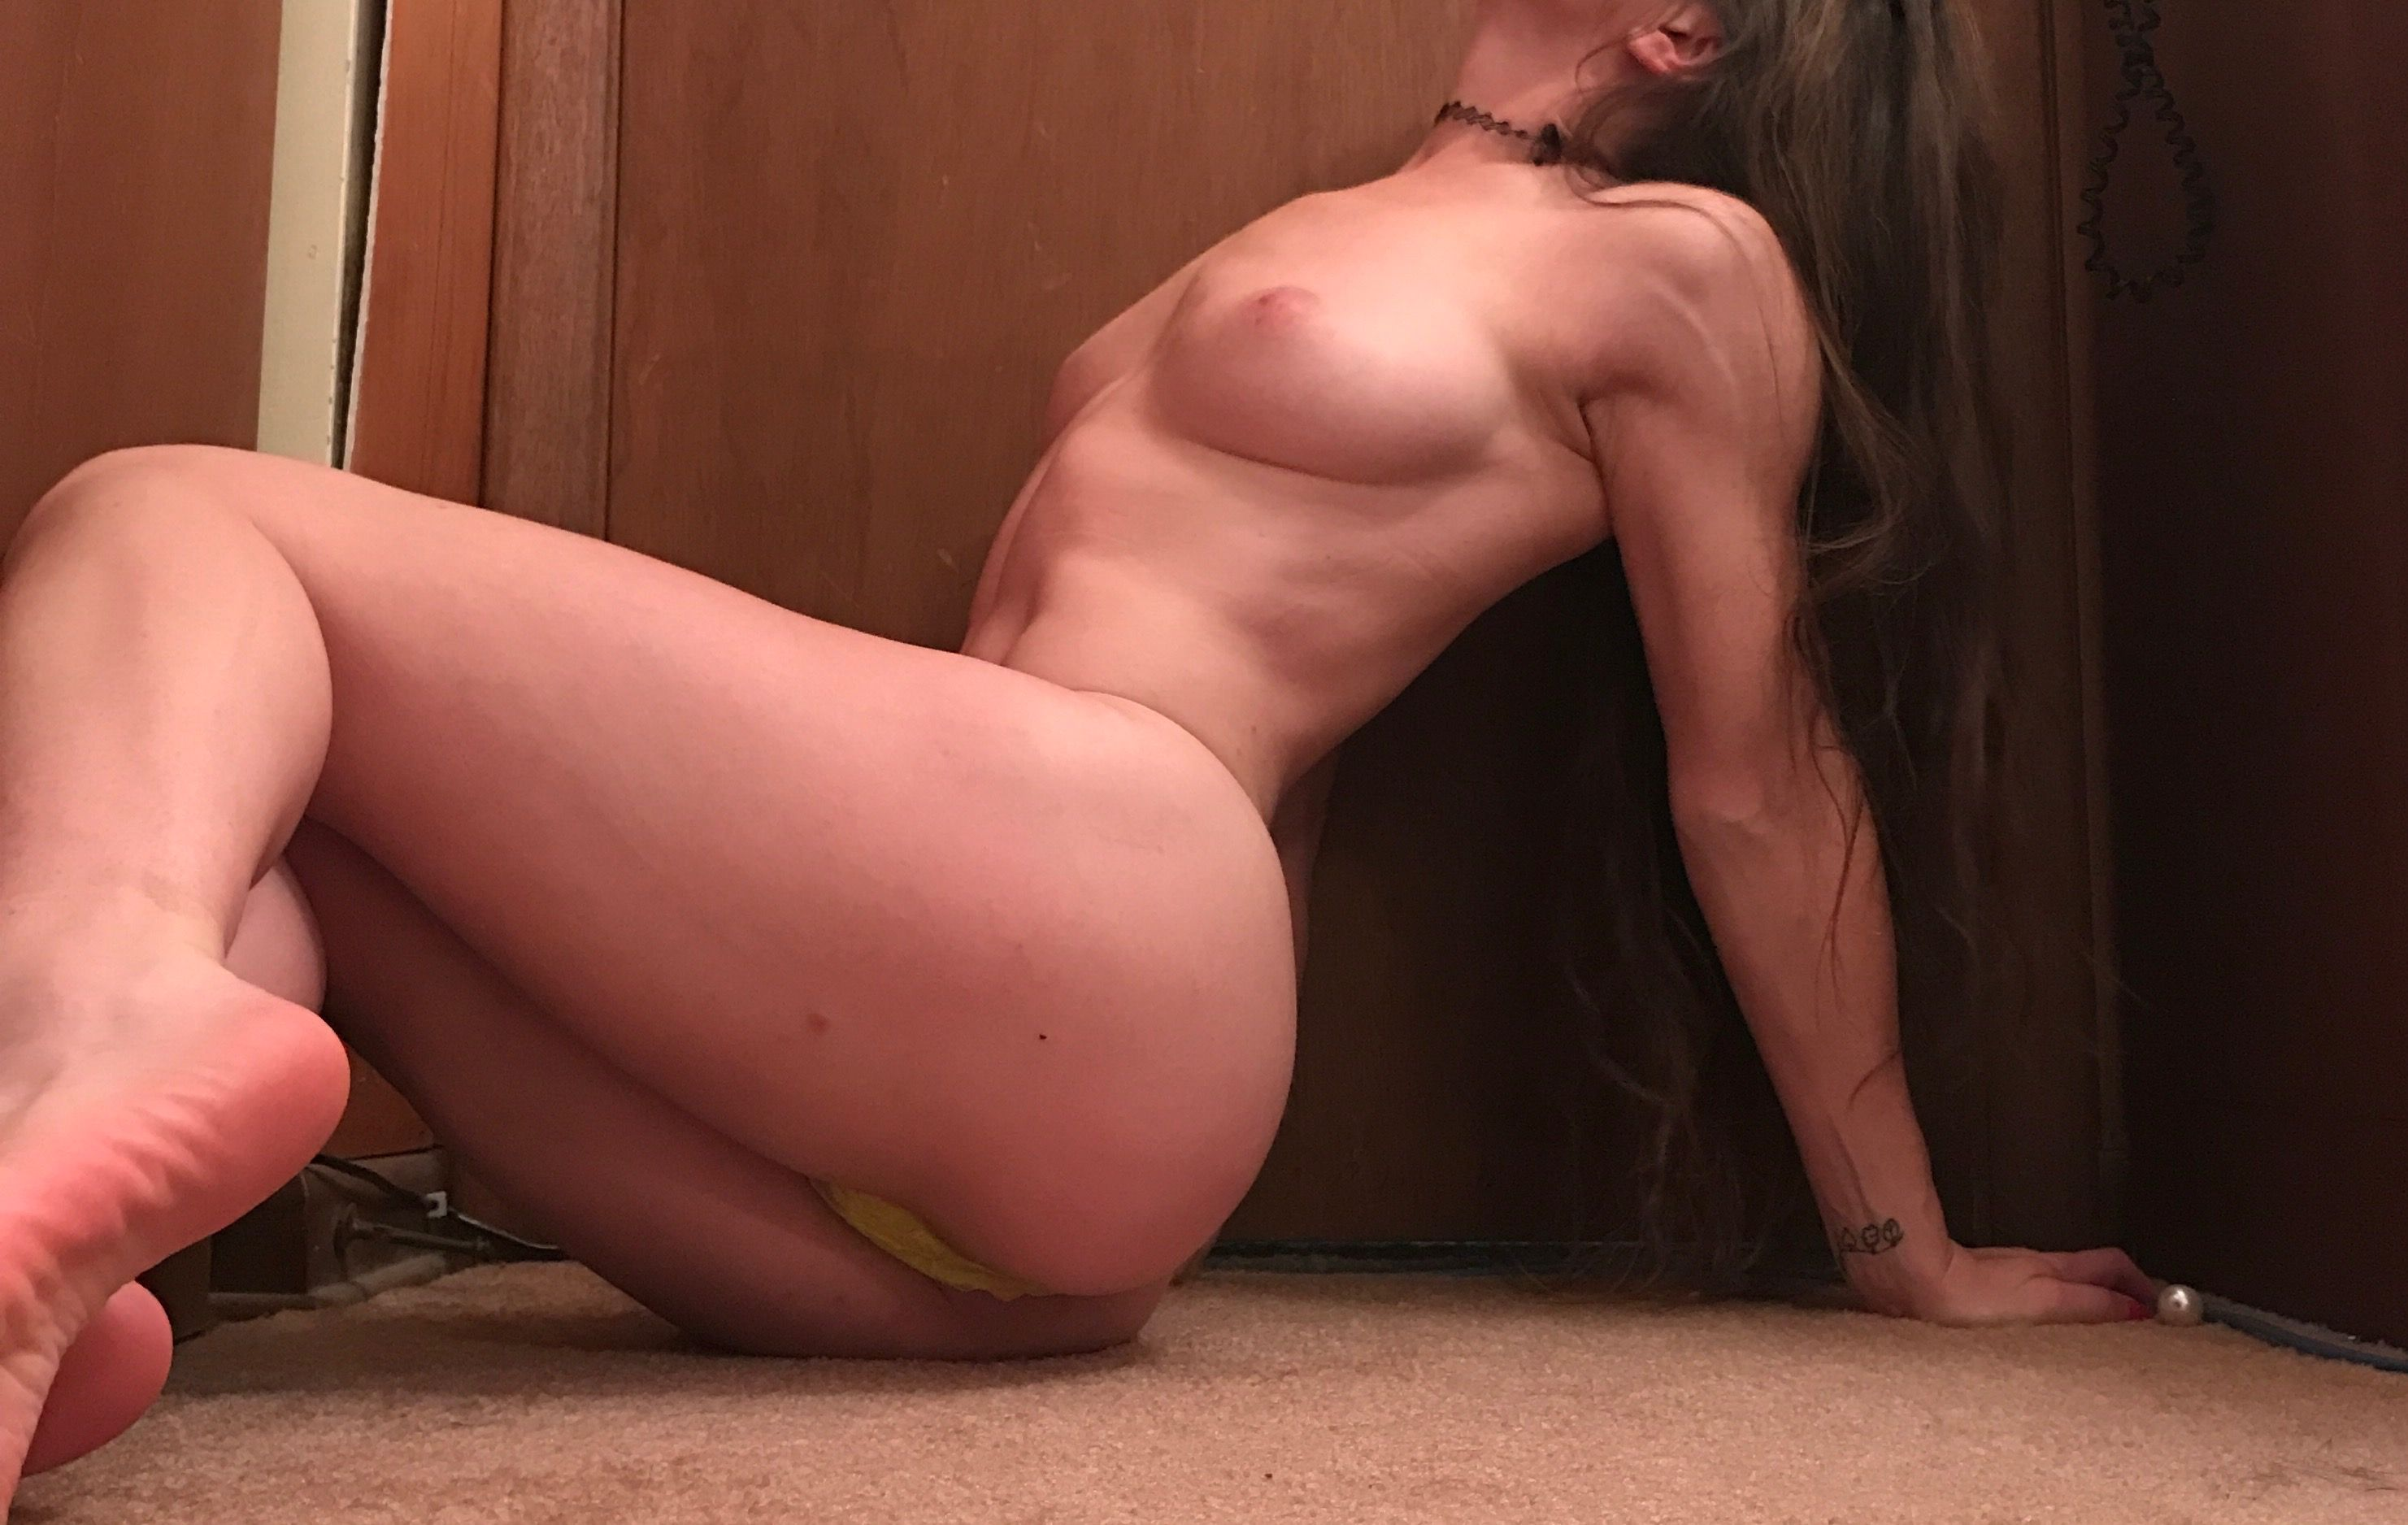 [Fit Babes] NSFW Flexibility [f] [Female]